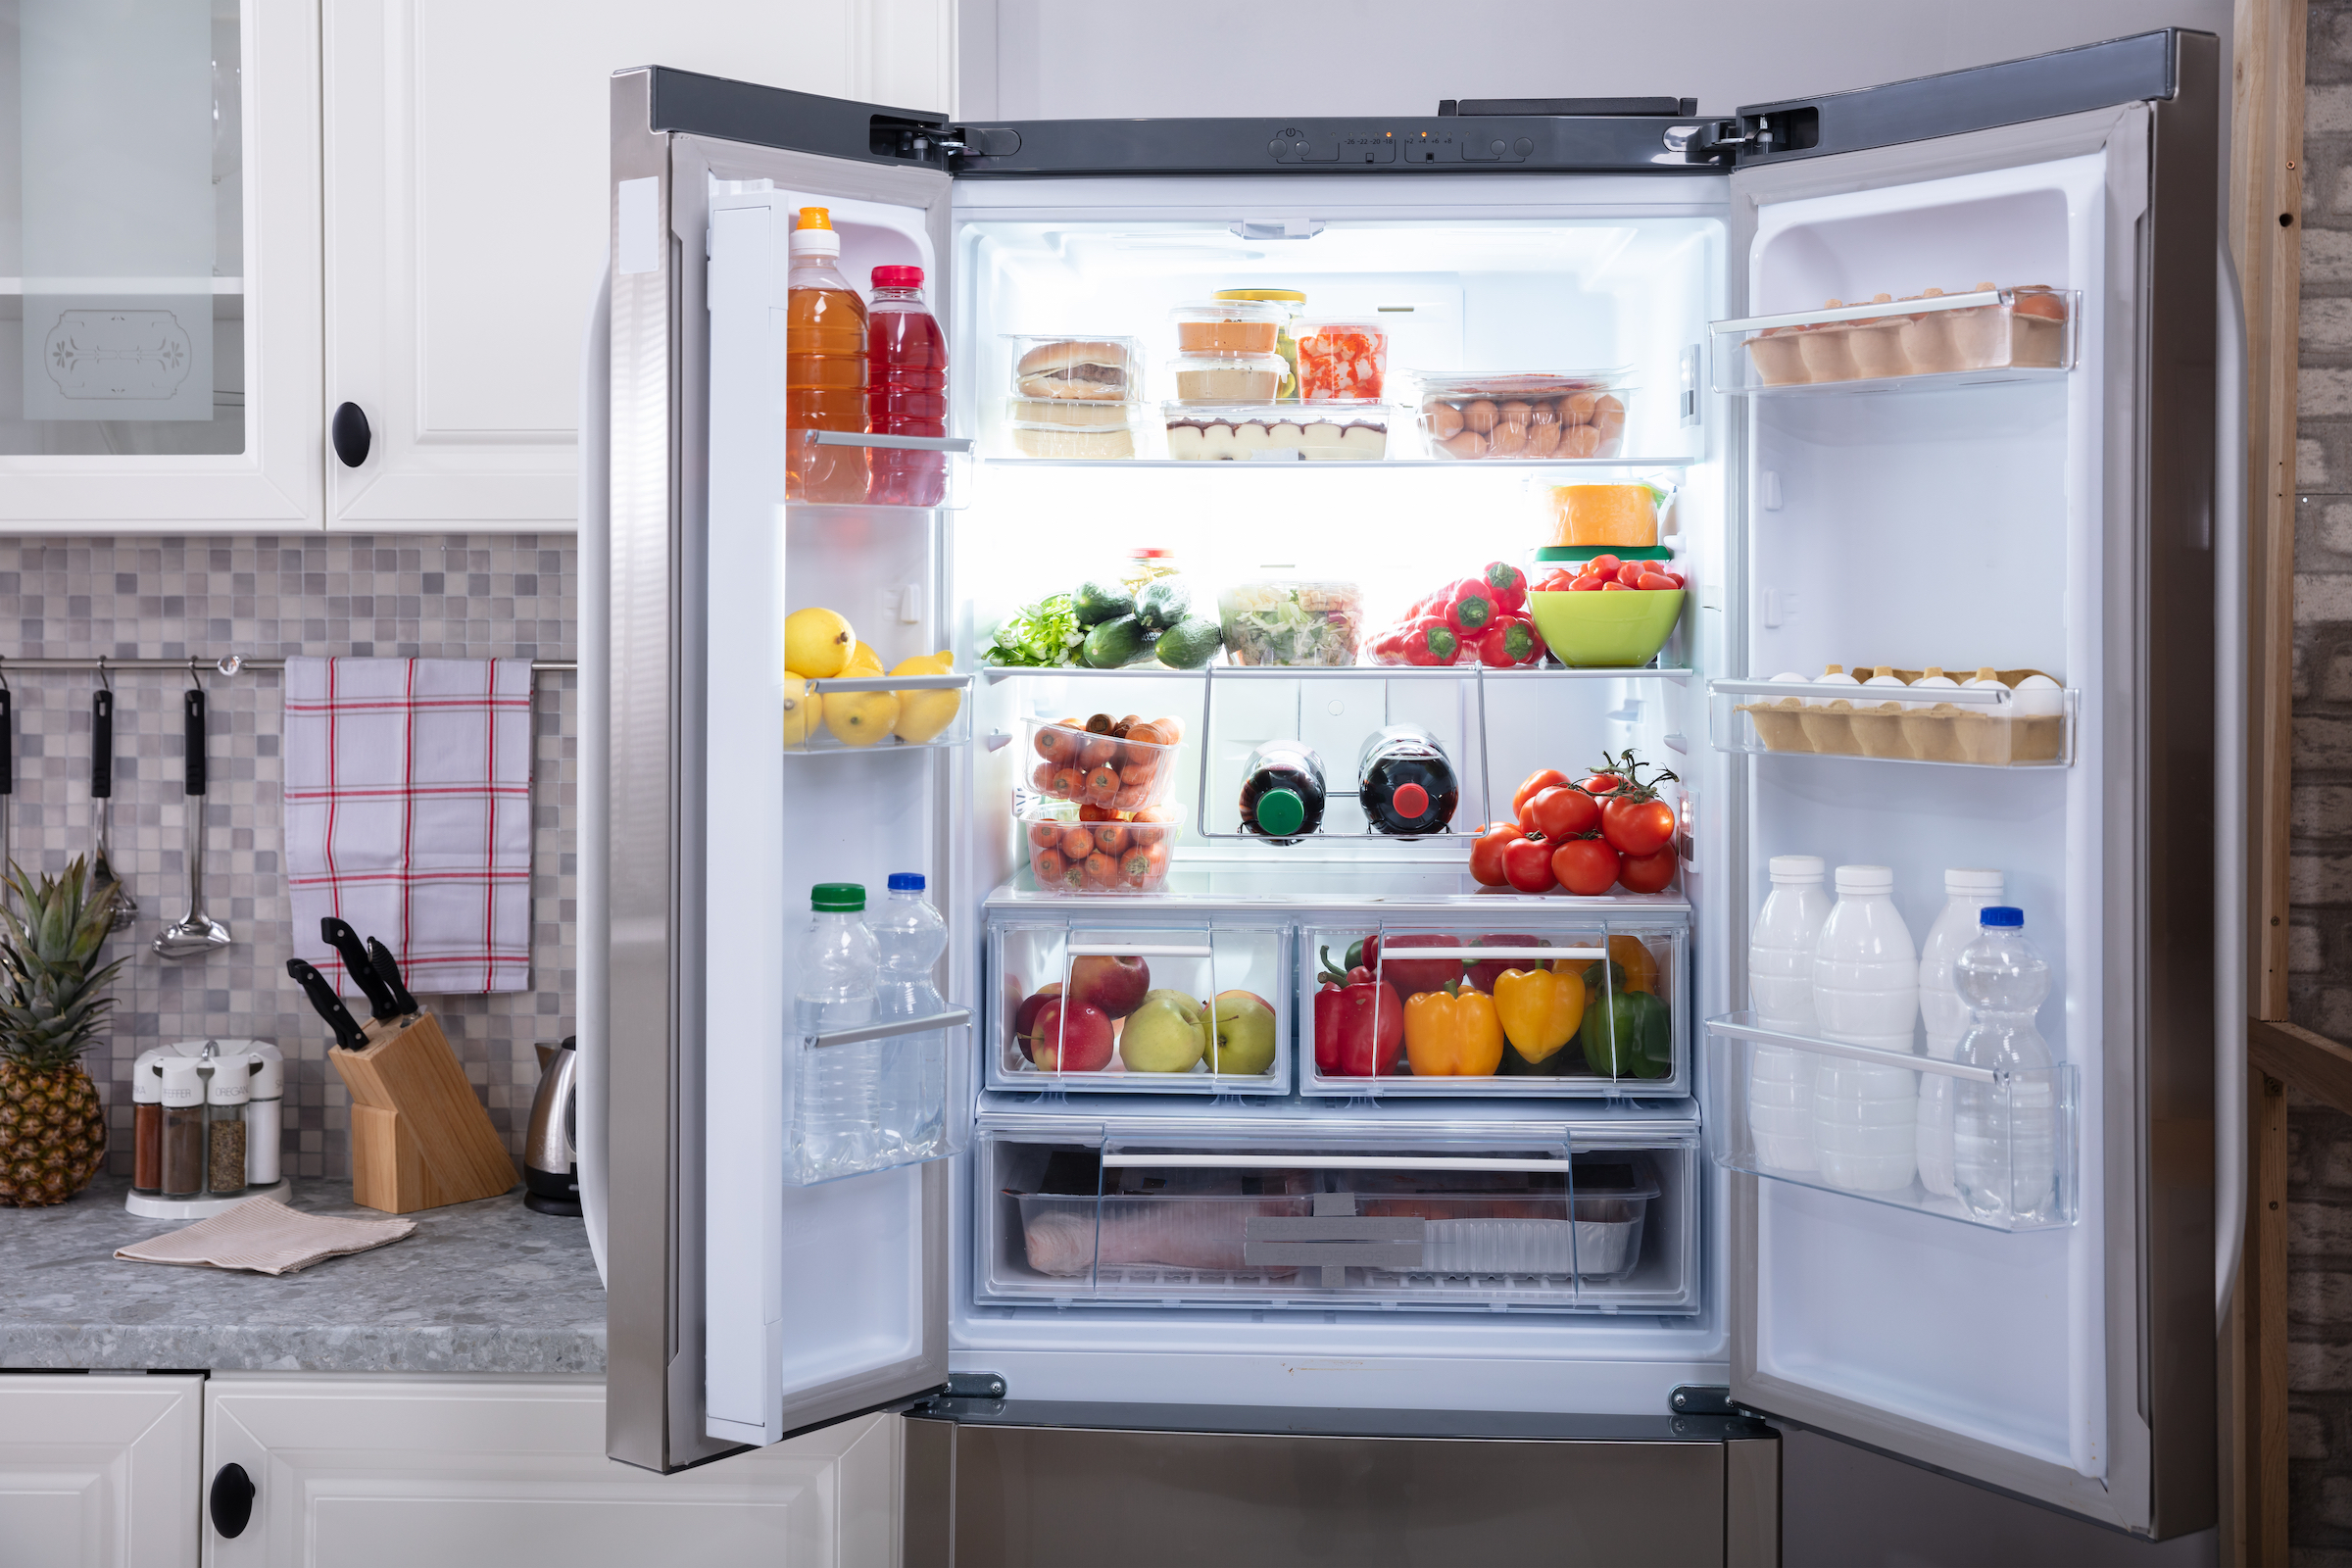 Make your refrigerator live longer with these home appliance maintenance tips